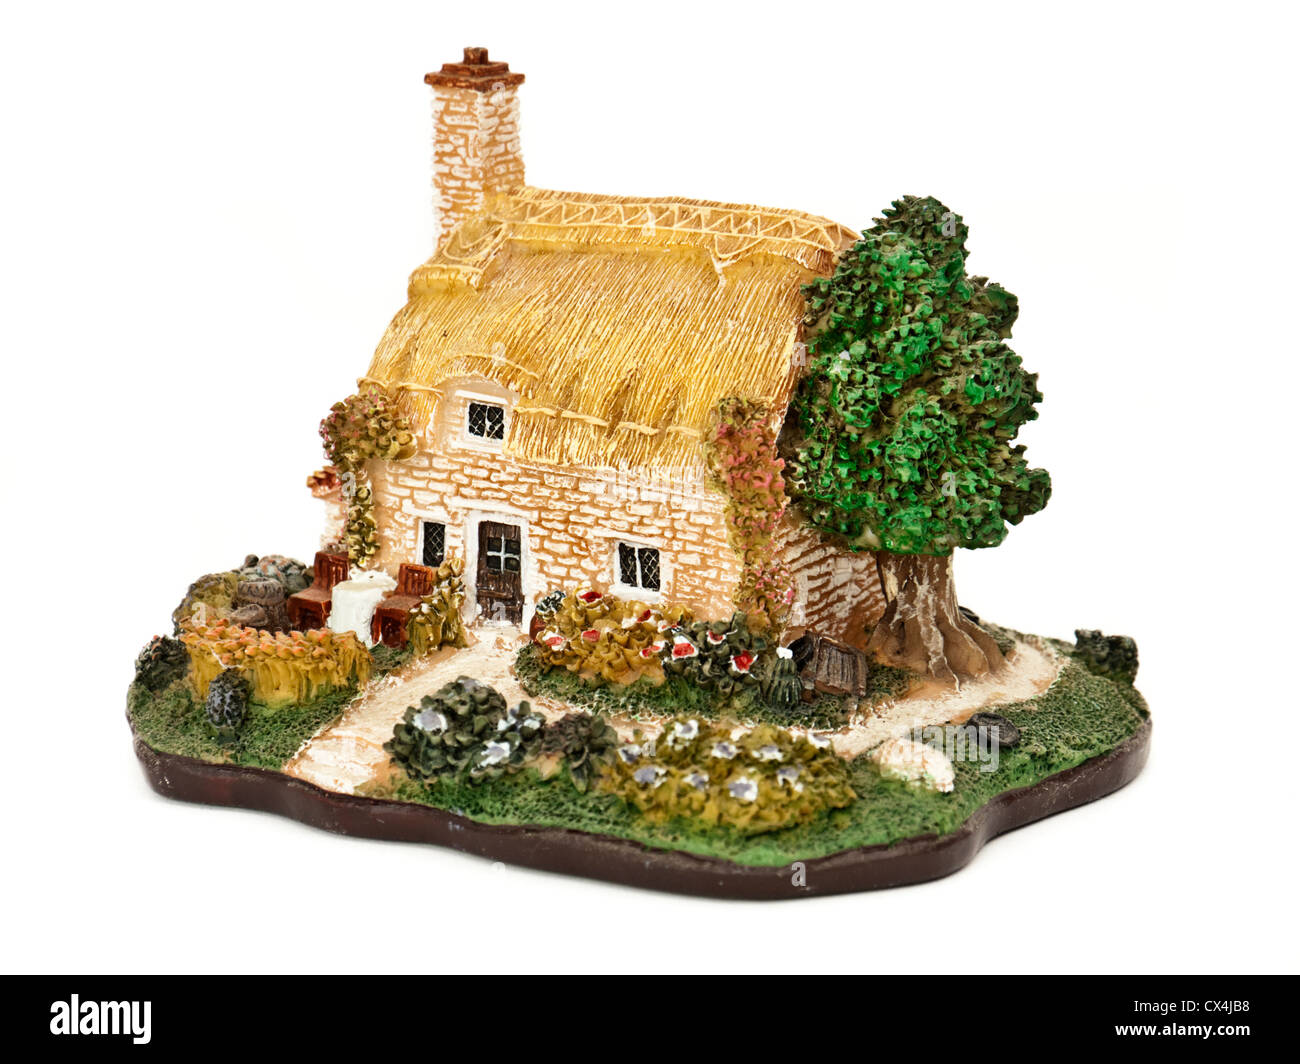 Miniature English country cottage ornament - Stock Image